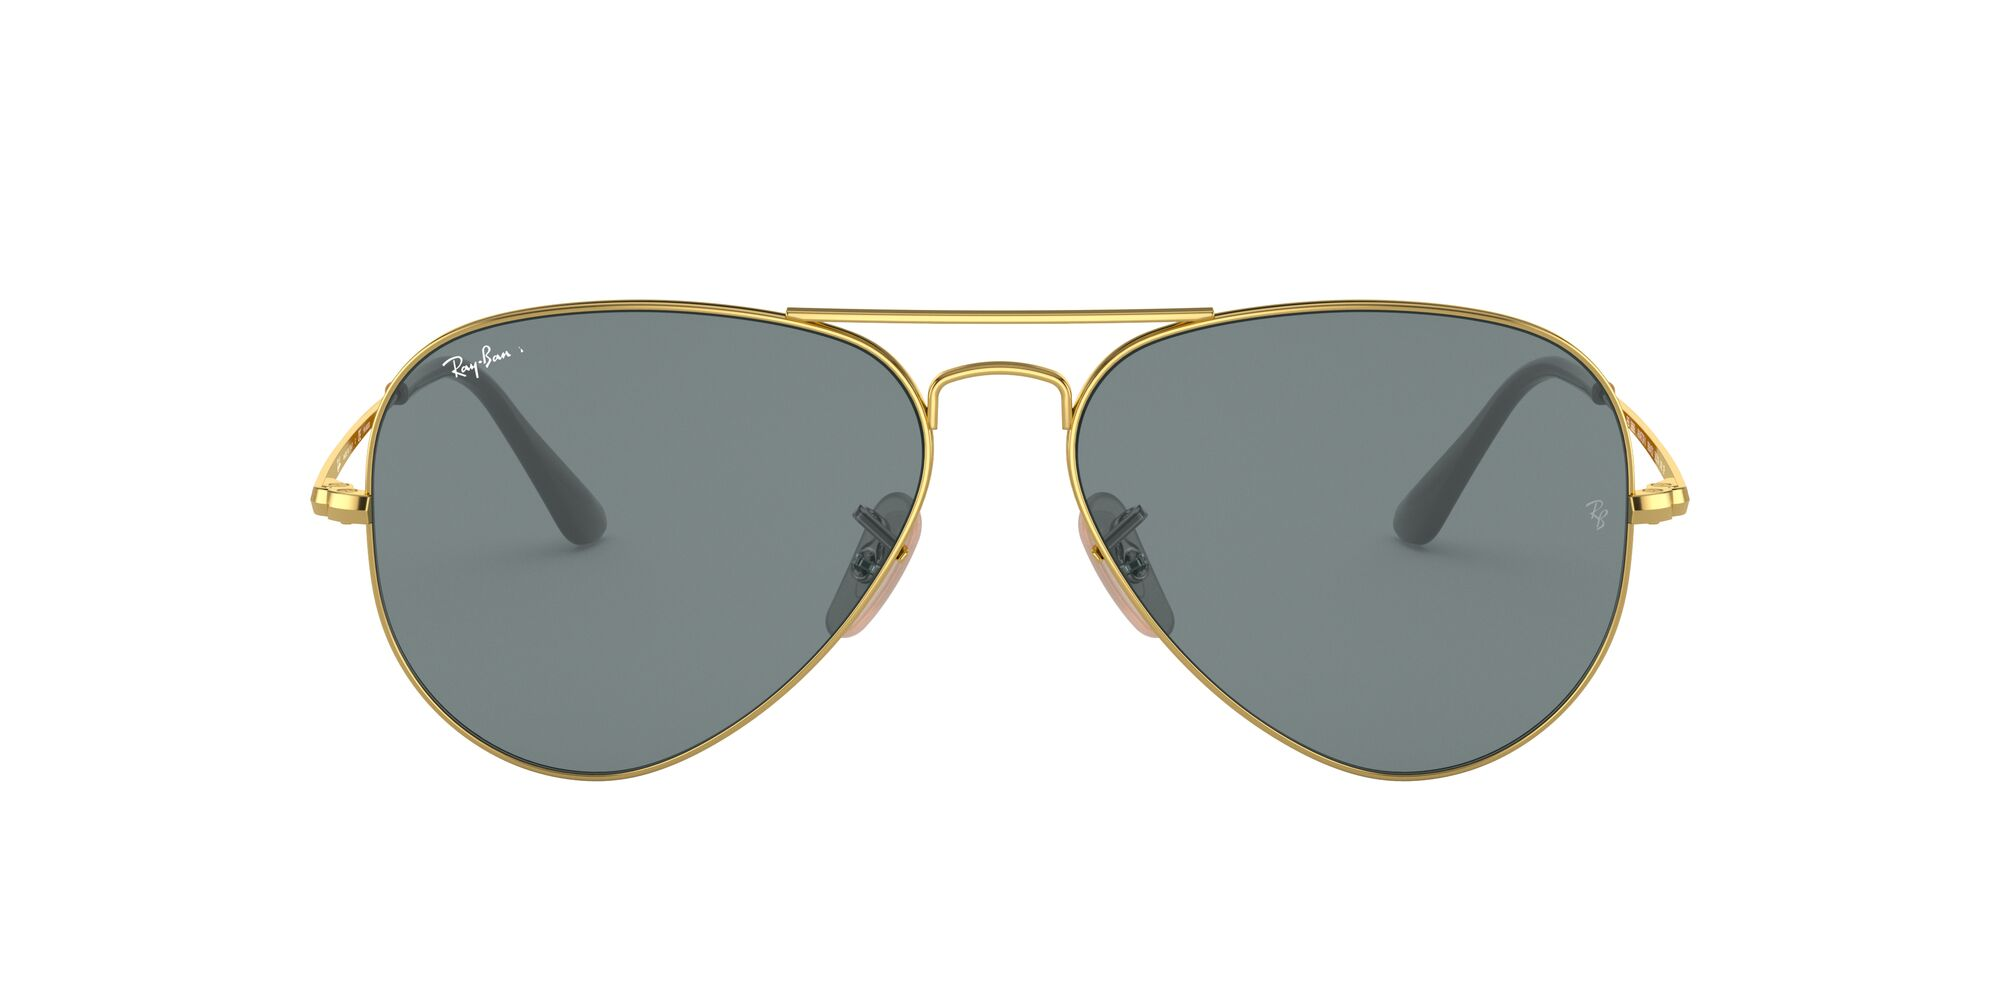 Front Ray-Ban Ray-Ban 0RB3689 9064S2 58/14 Goud/Blauw